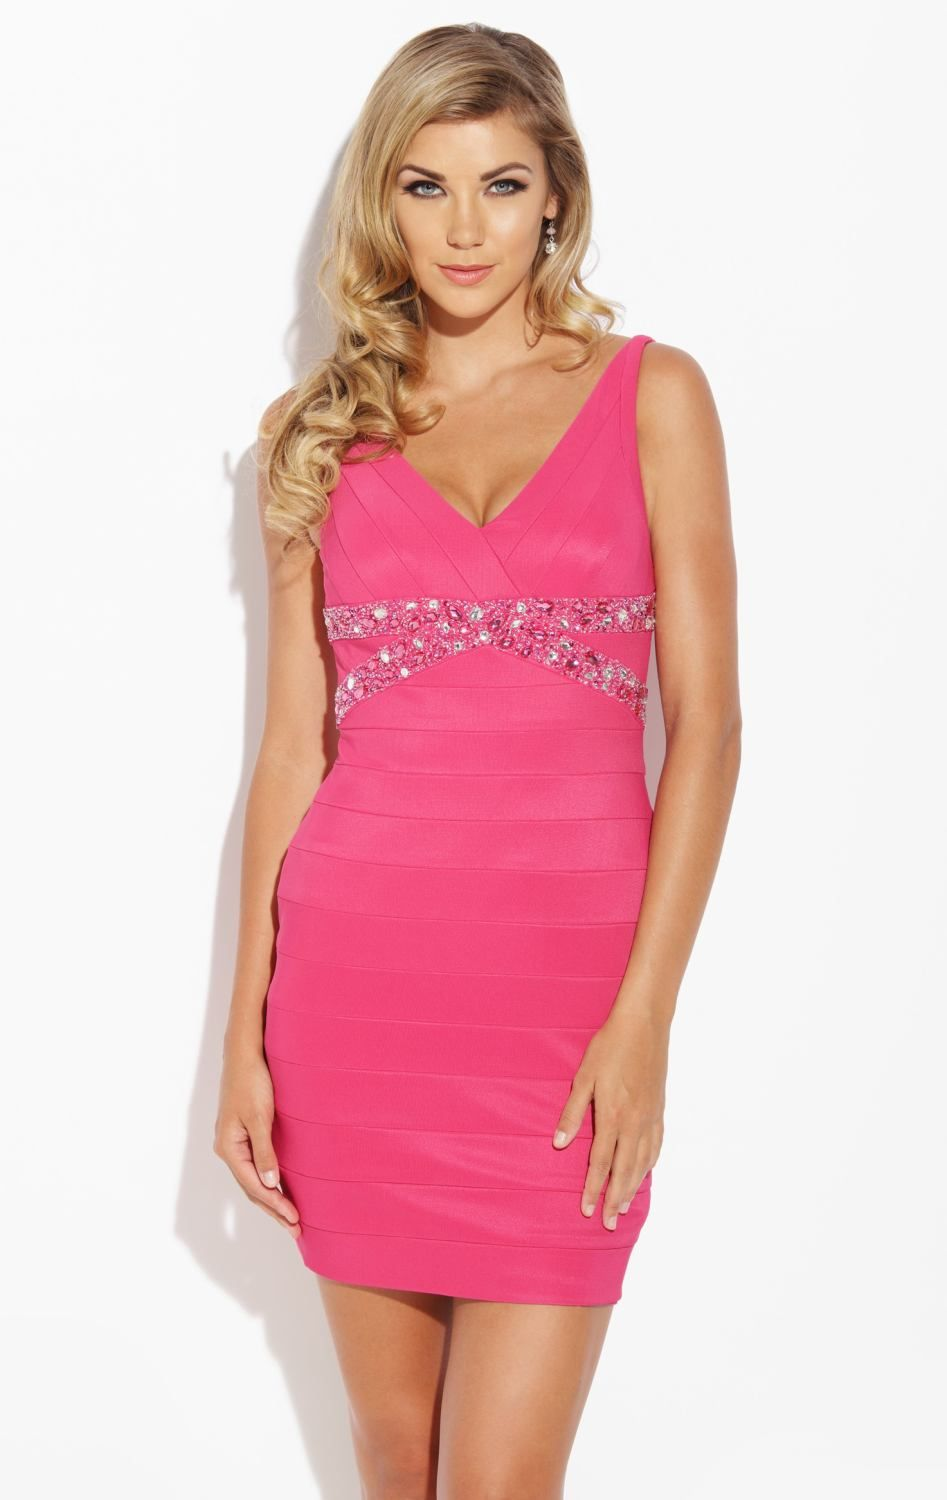 Embellished Mini Dress by Jolene for sale at $322.50 amazing price ...